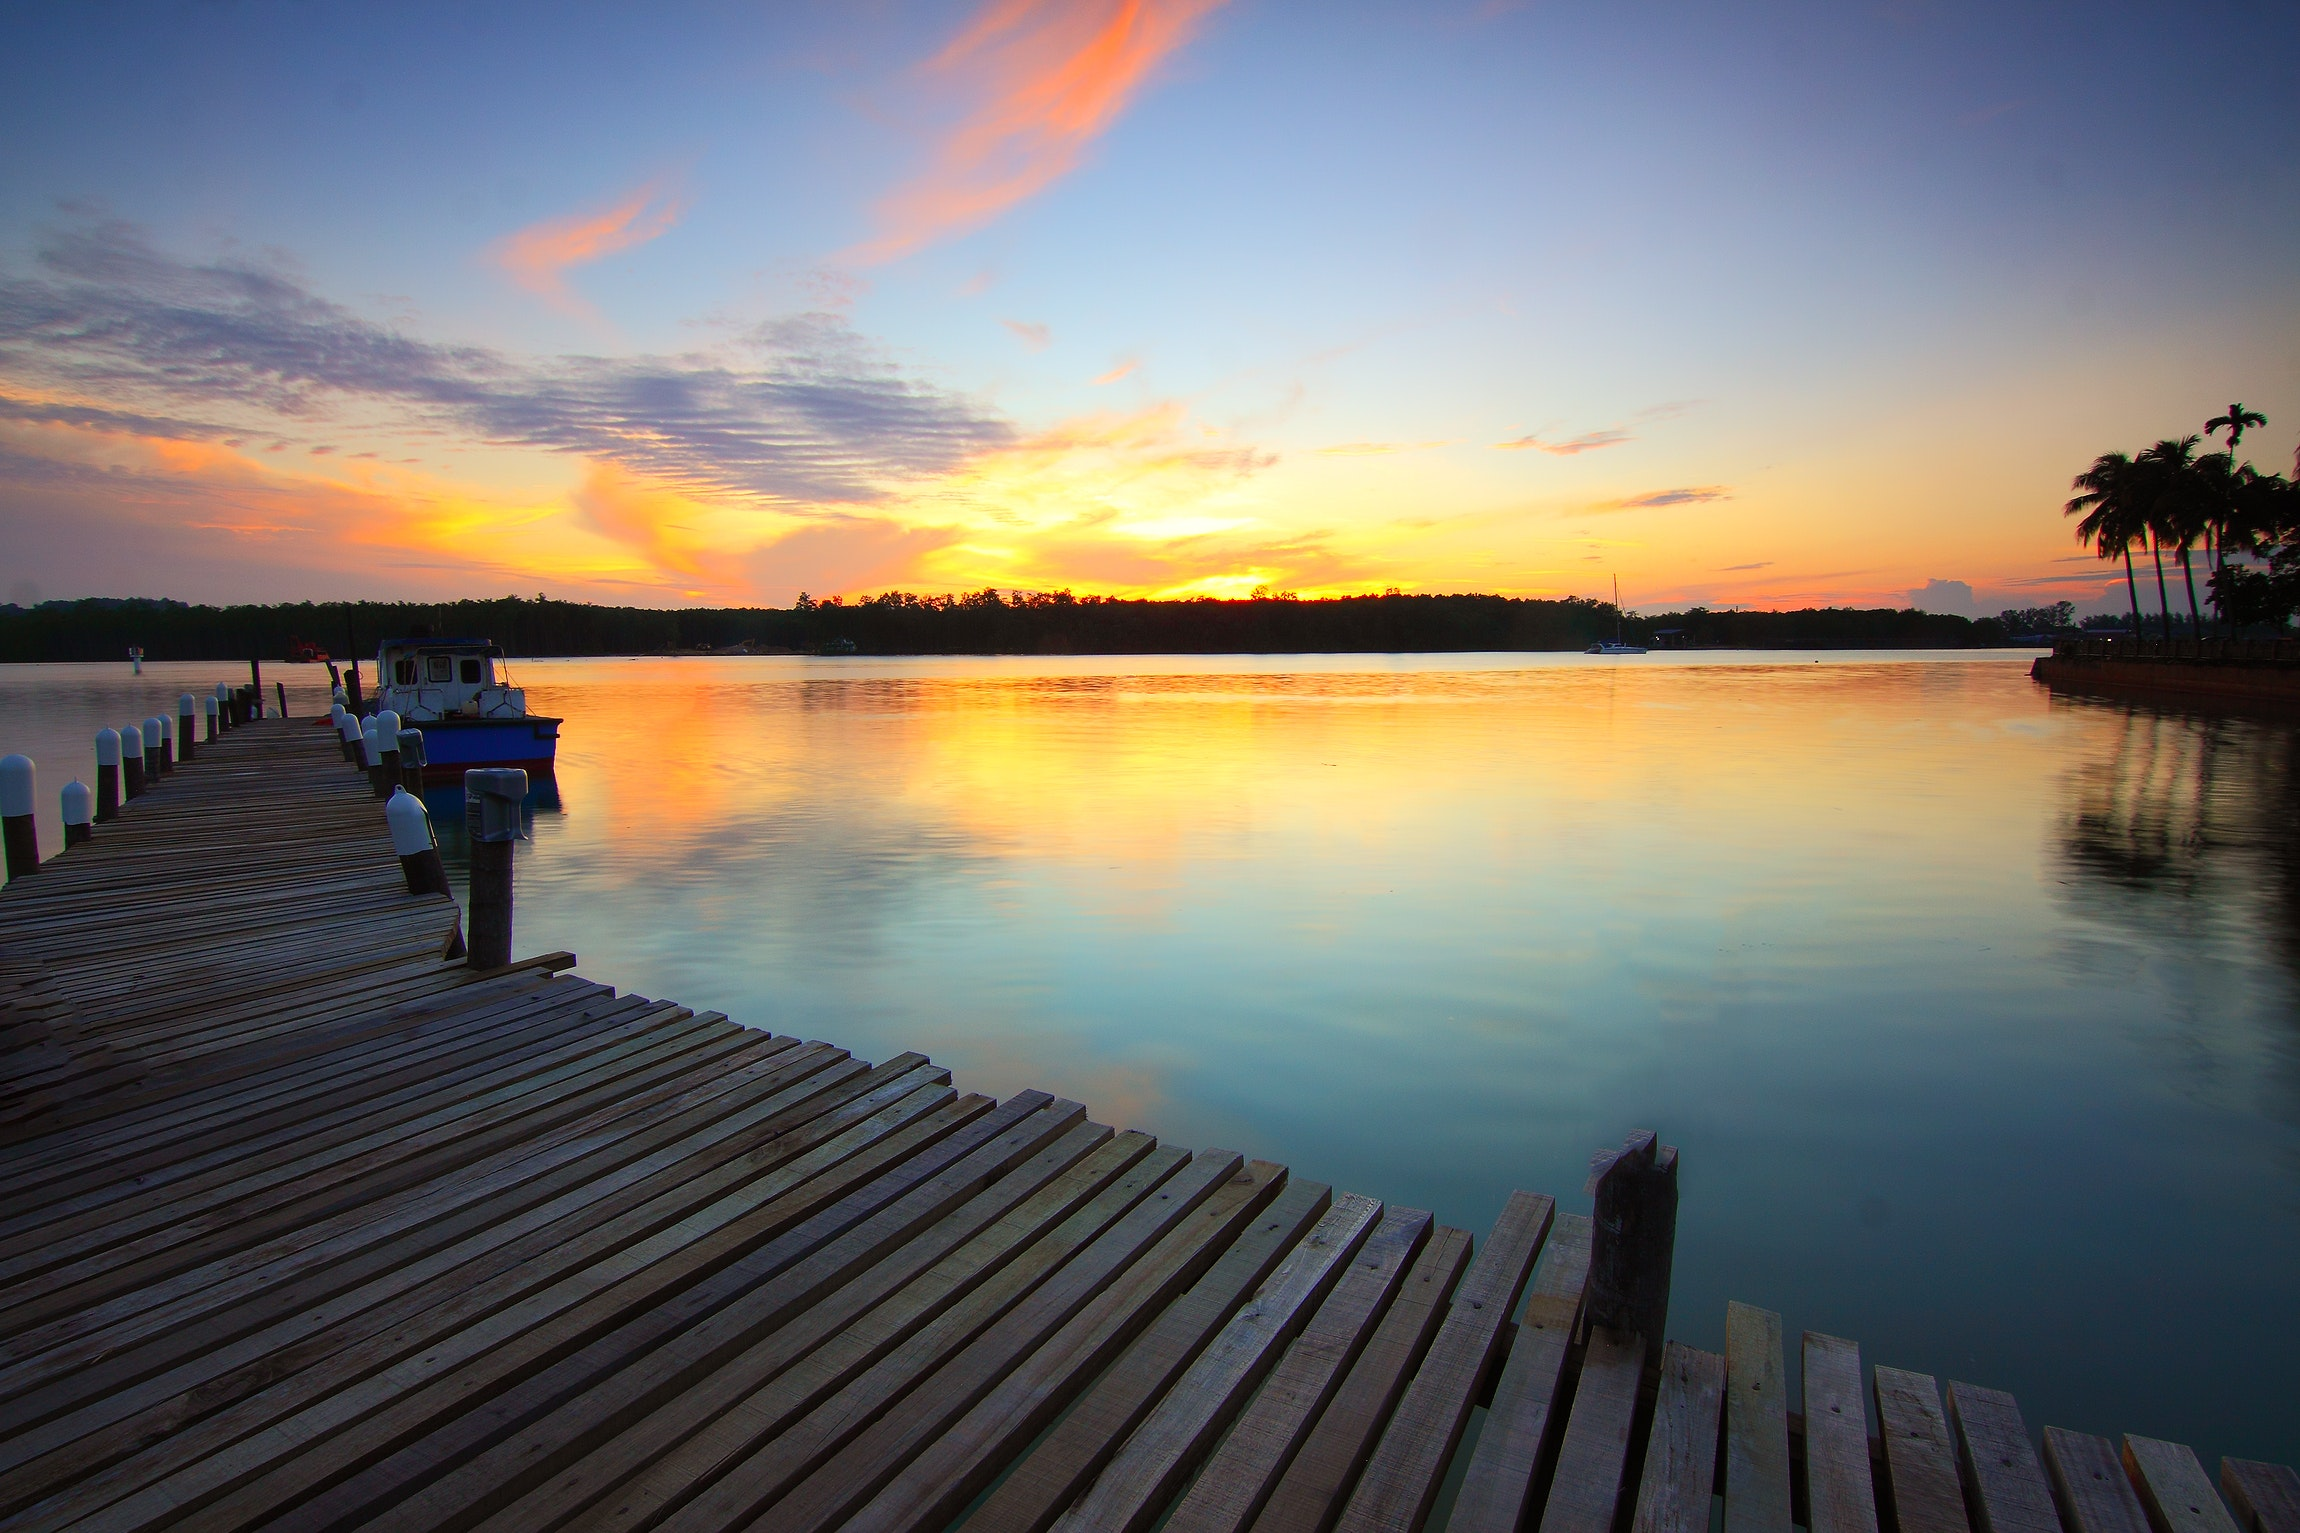 Brown Wooden Dock on Body of Water during Twilight, Boat, Dawn, Dusk, Jetty, HQ Photo